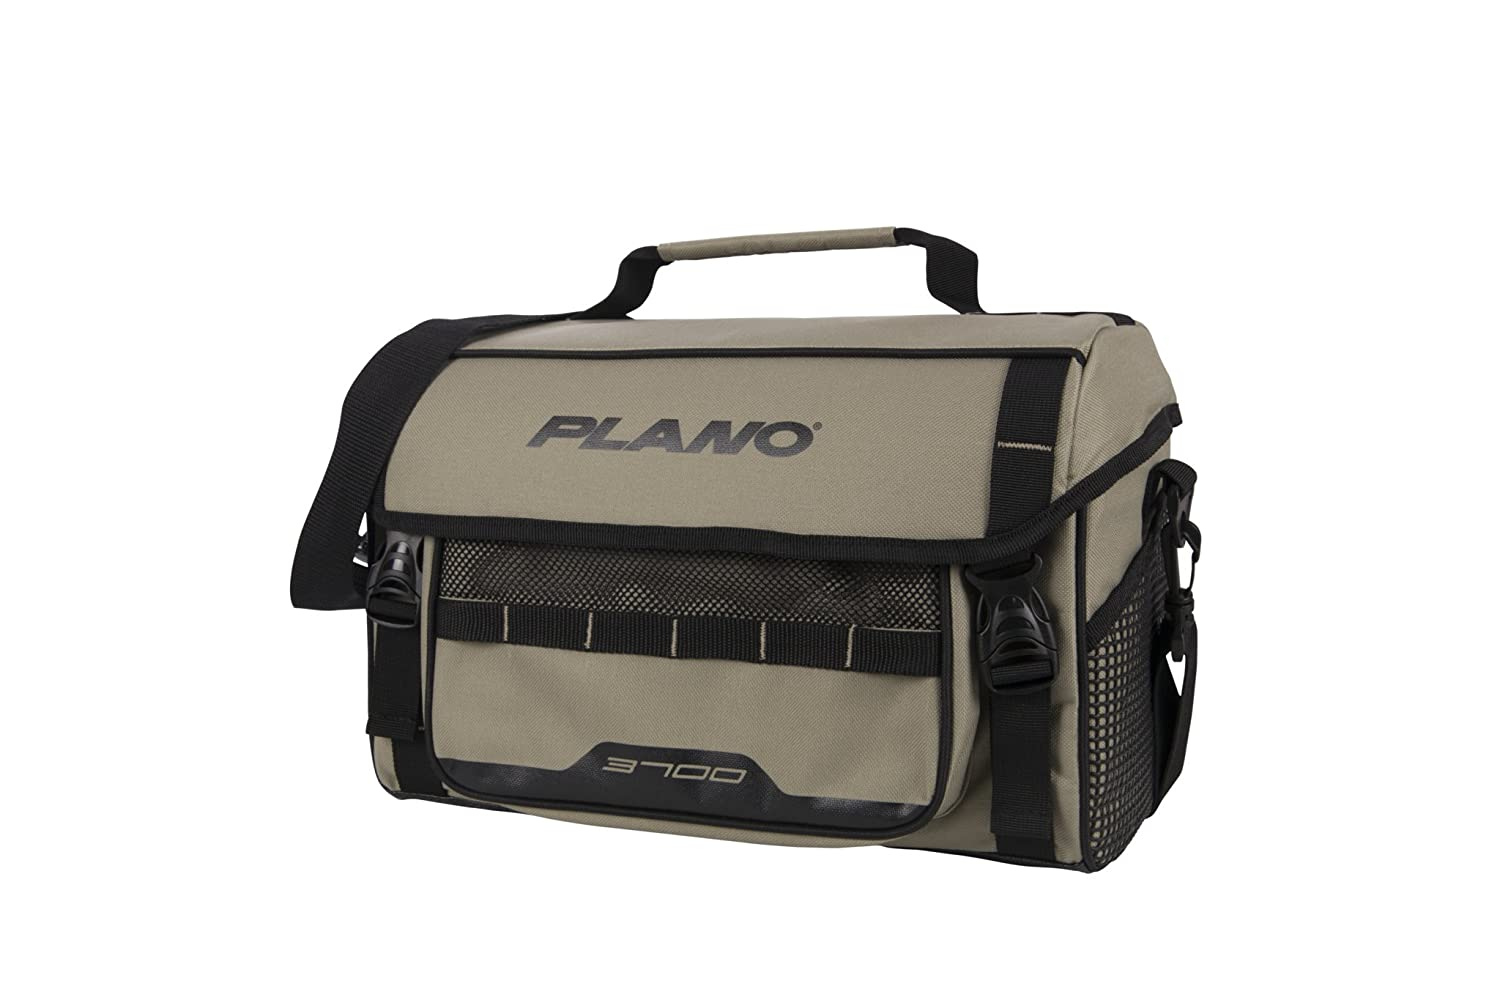 Plano Weekend SoftSider 3600 Soft Sided Tackle Bag Box w// 2 Boxes Included NEW